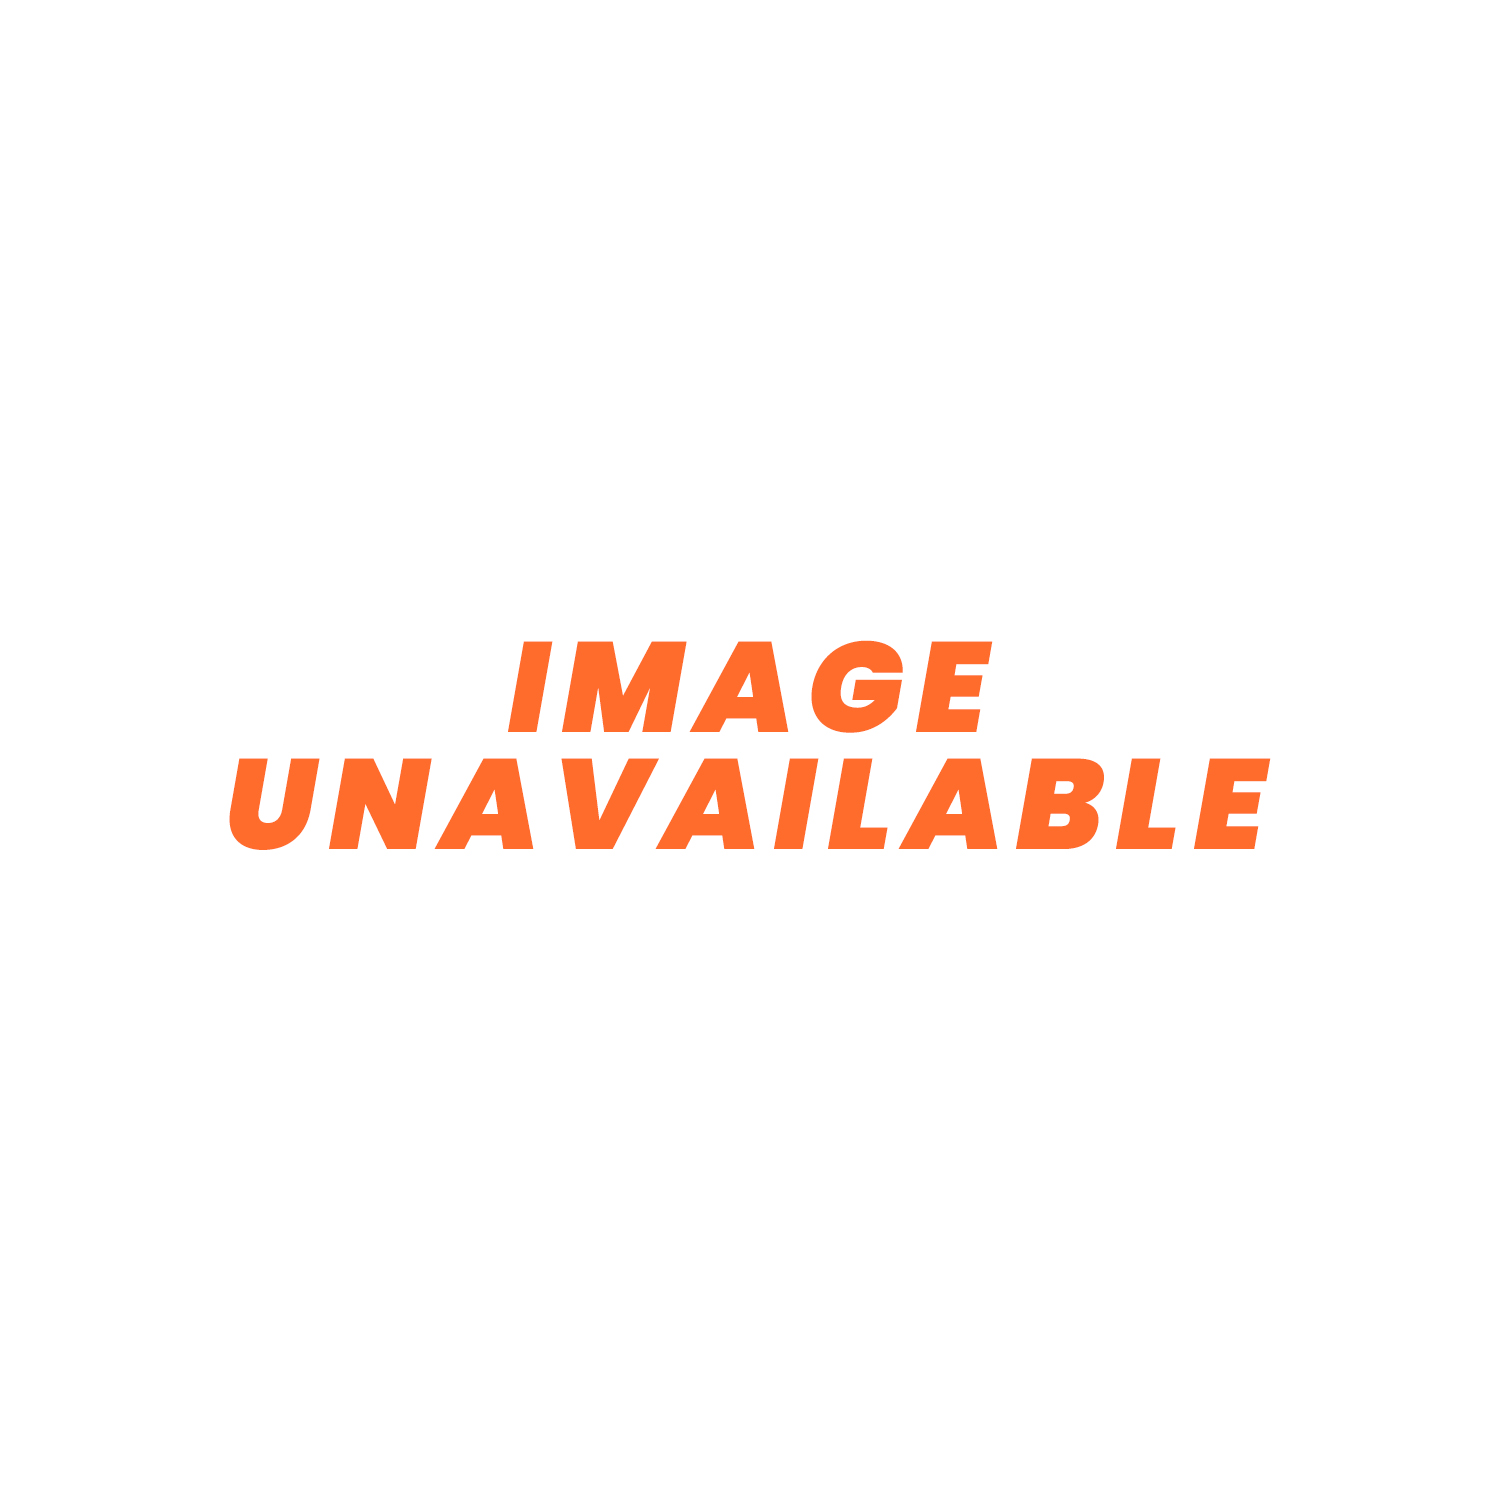 "PAP Hot Air Ducting - 60mm (2.36"") ID x1m"